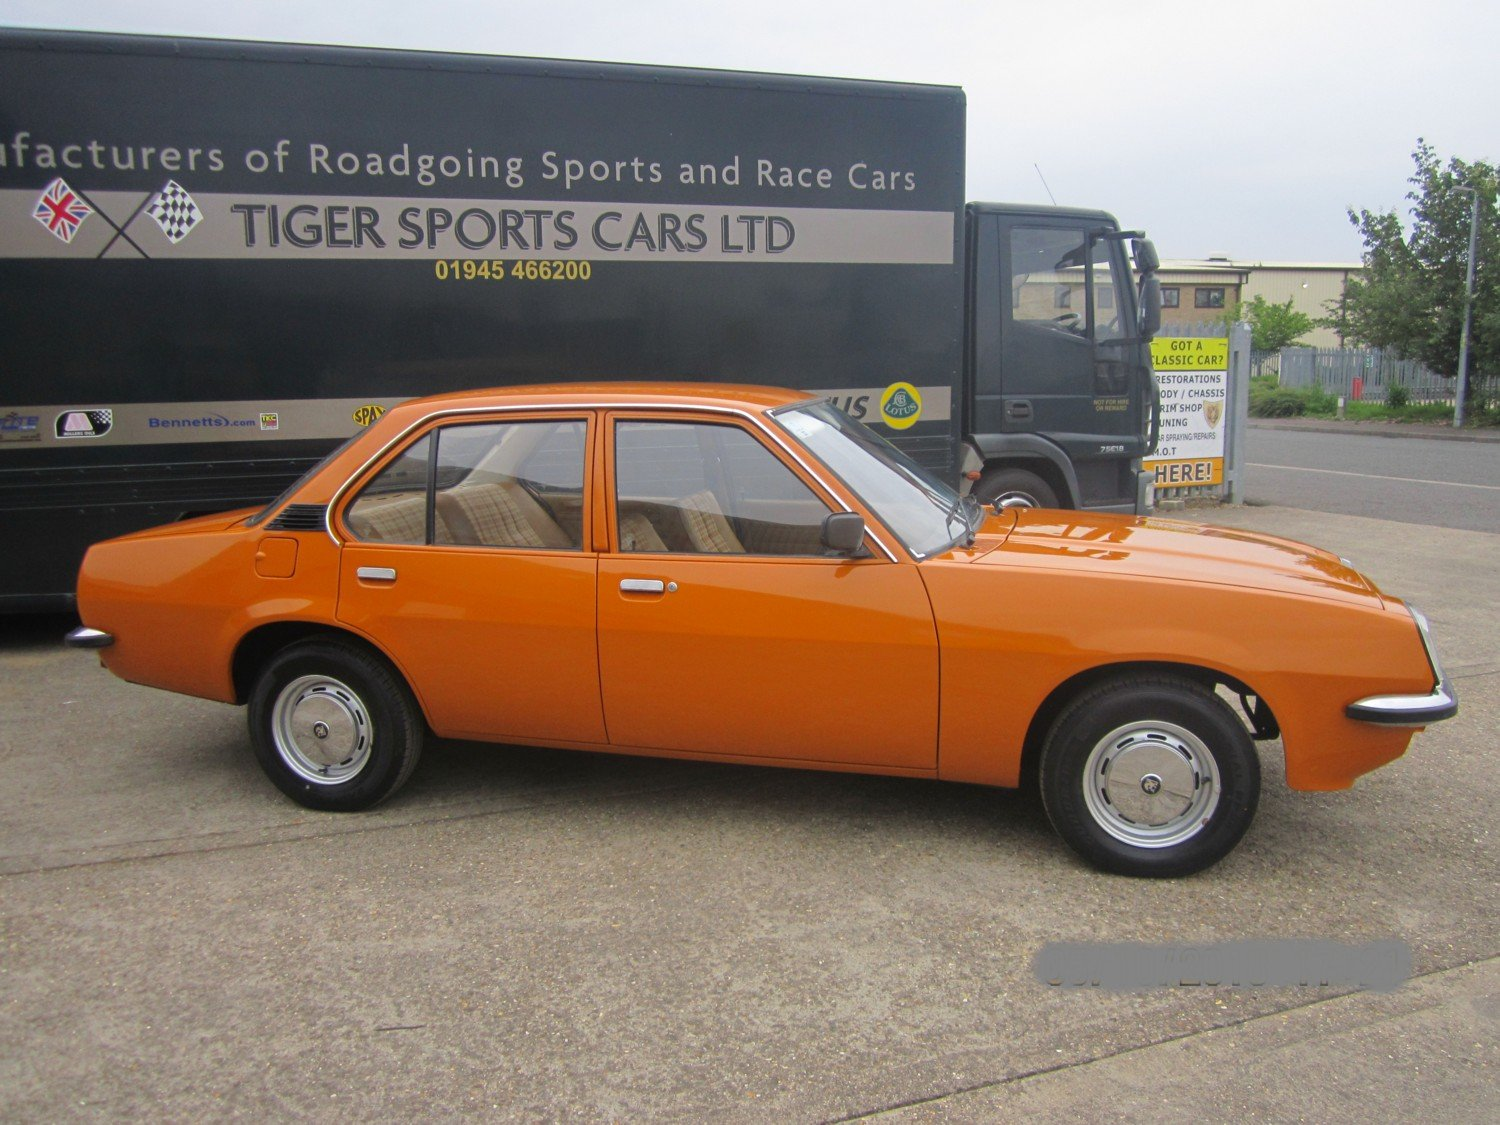 1980 Vauxhall cavalier 1250cc rare stunning For Sale (picture 3 of 6)